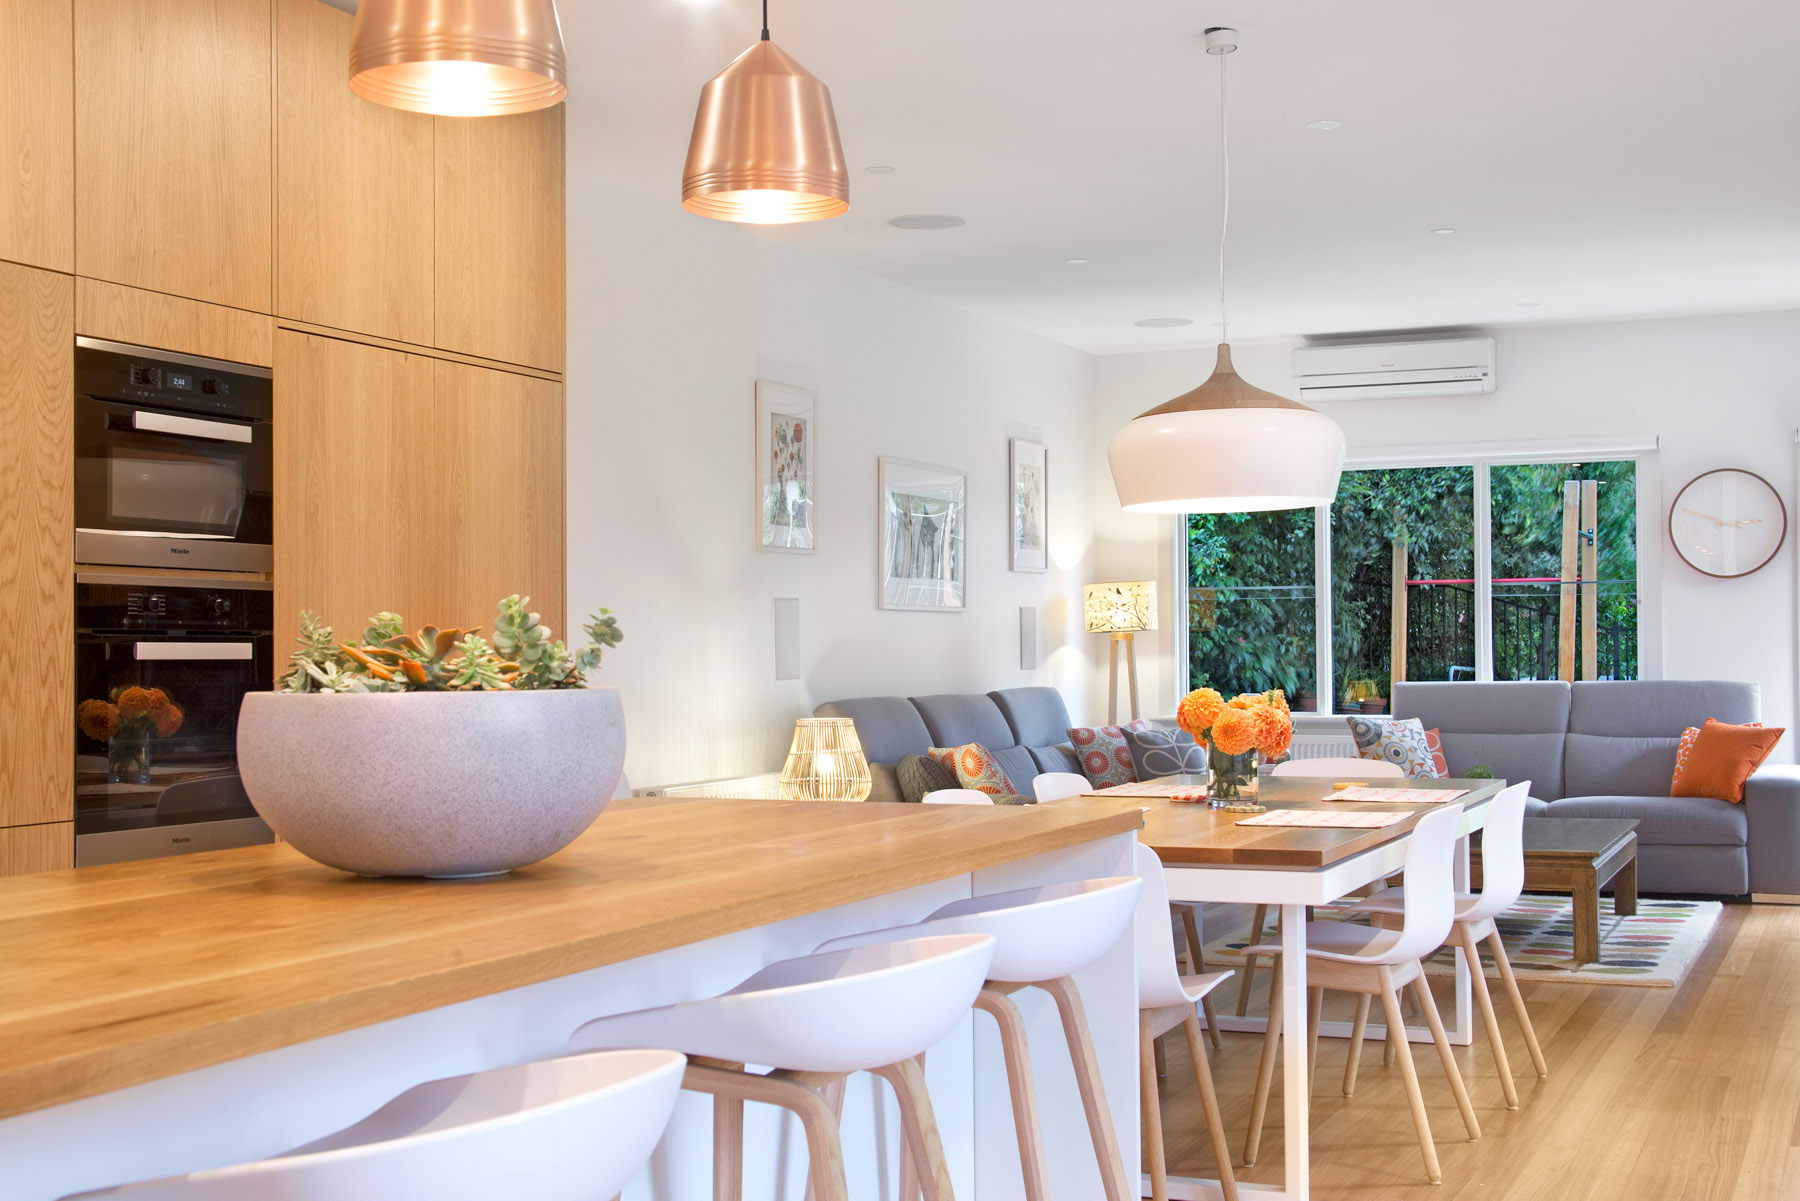 Things To Keep In Mind While Renovating Period Home